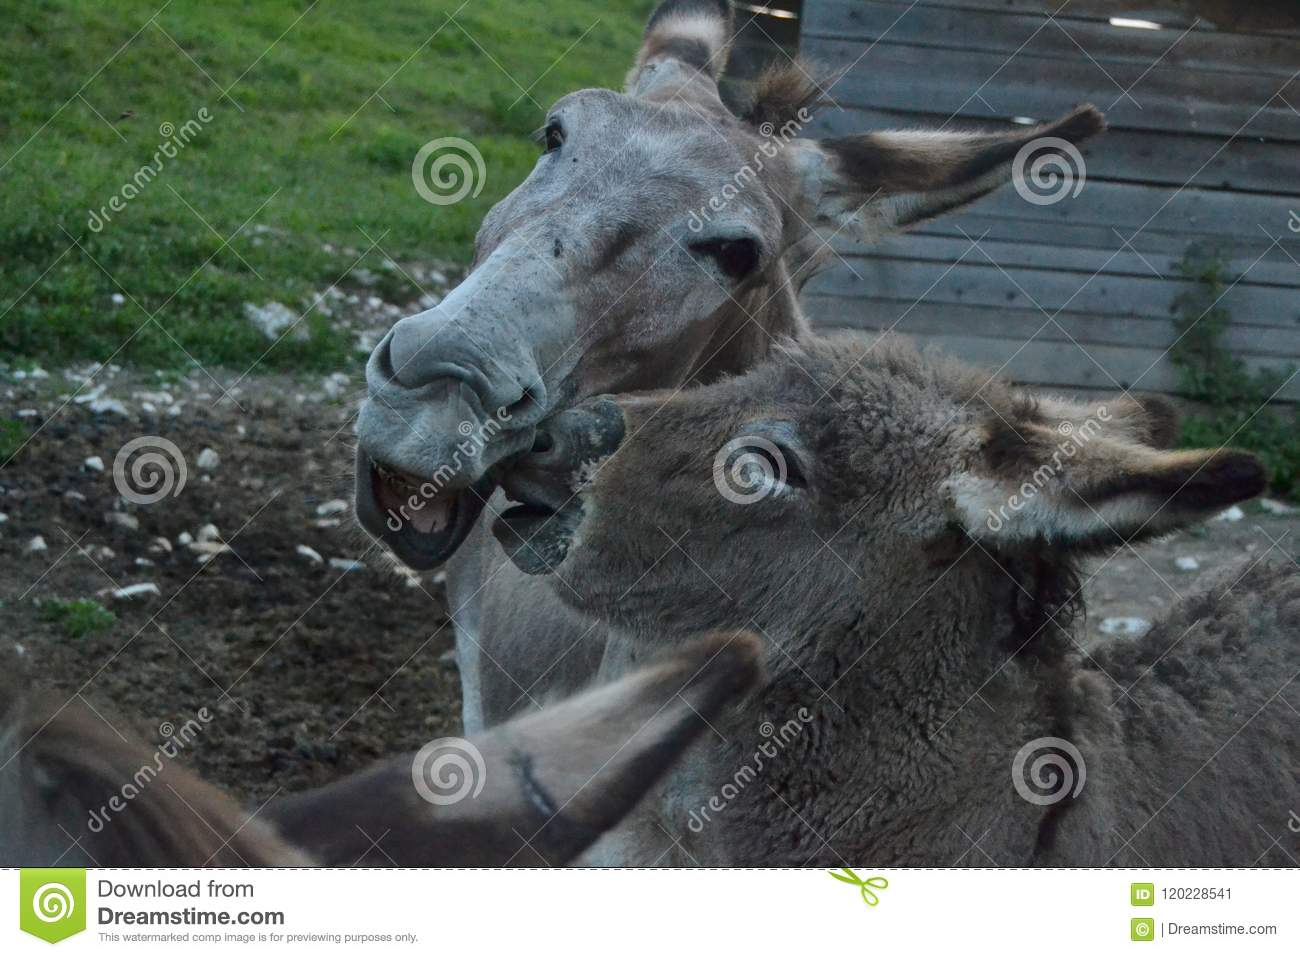 Donkeys in a farm situated in Ronchena (Veneto, Italy)